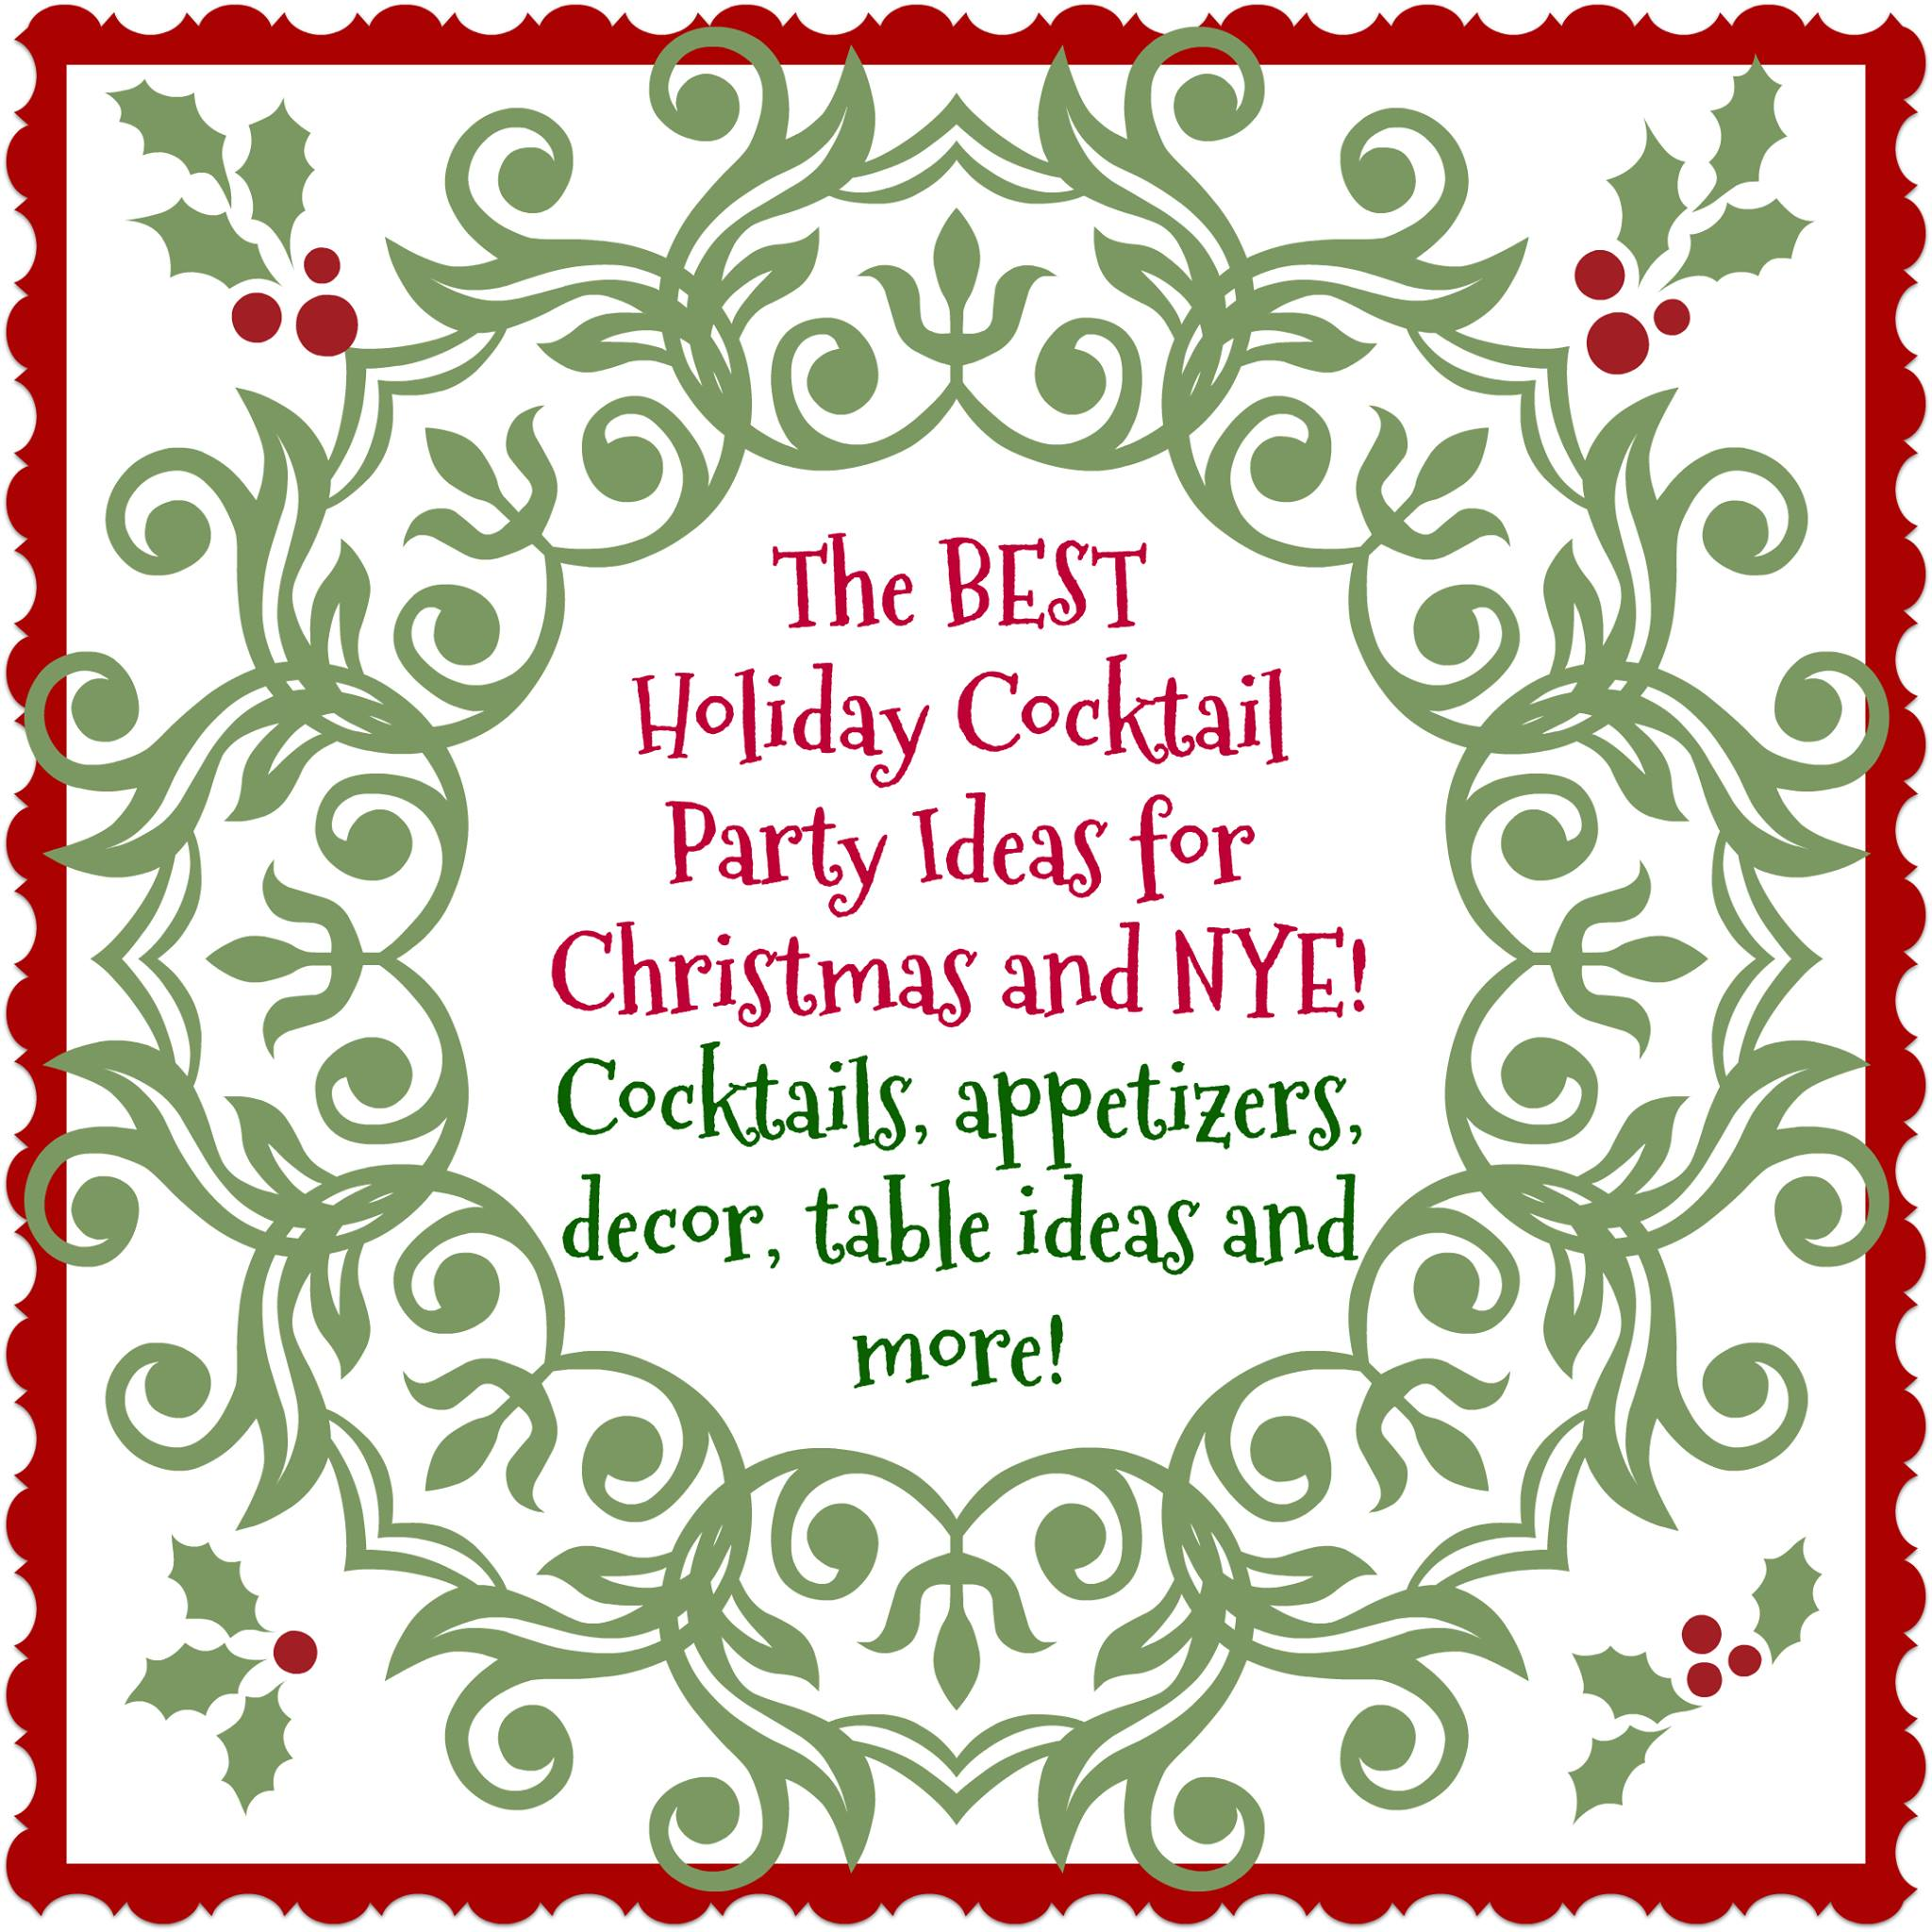 The BEST Holiday Cocktail Party Ideas for Christmas and NYE!